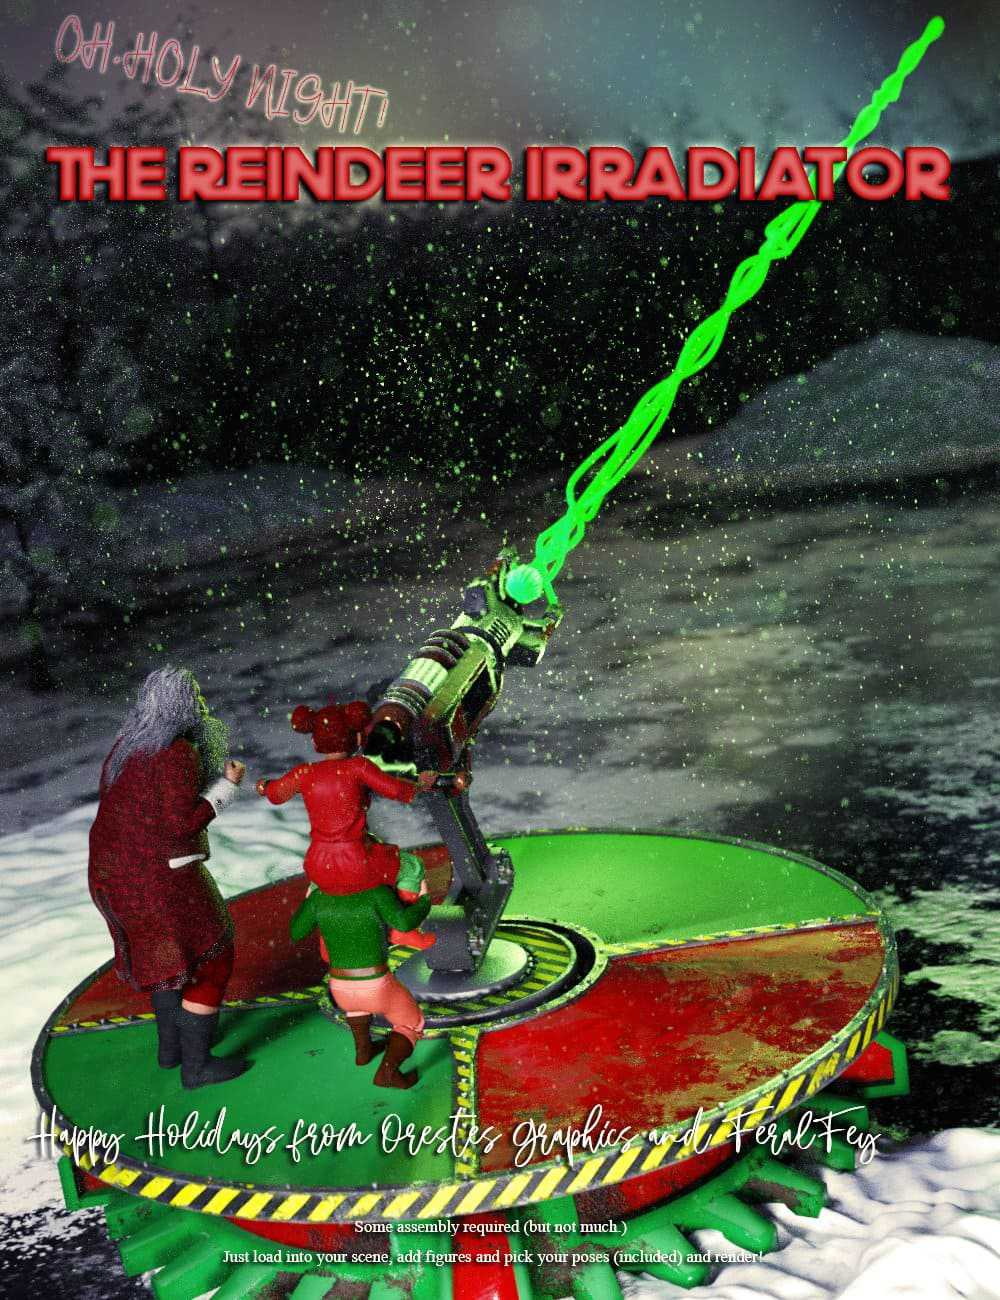 Reindeer Irradiator and Poses